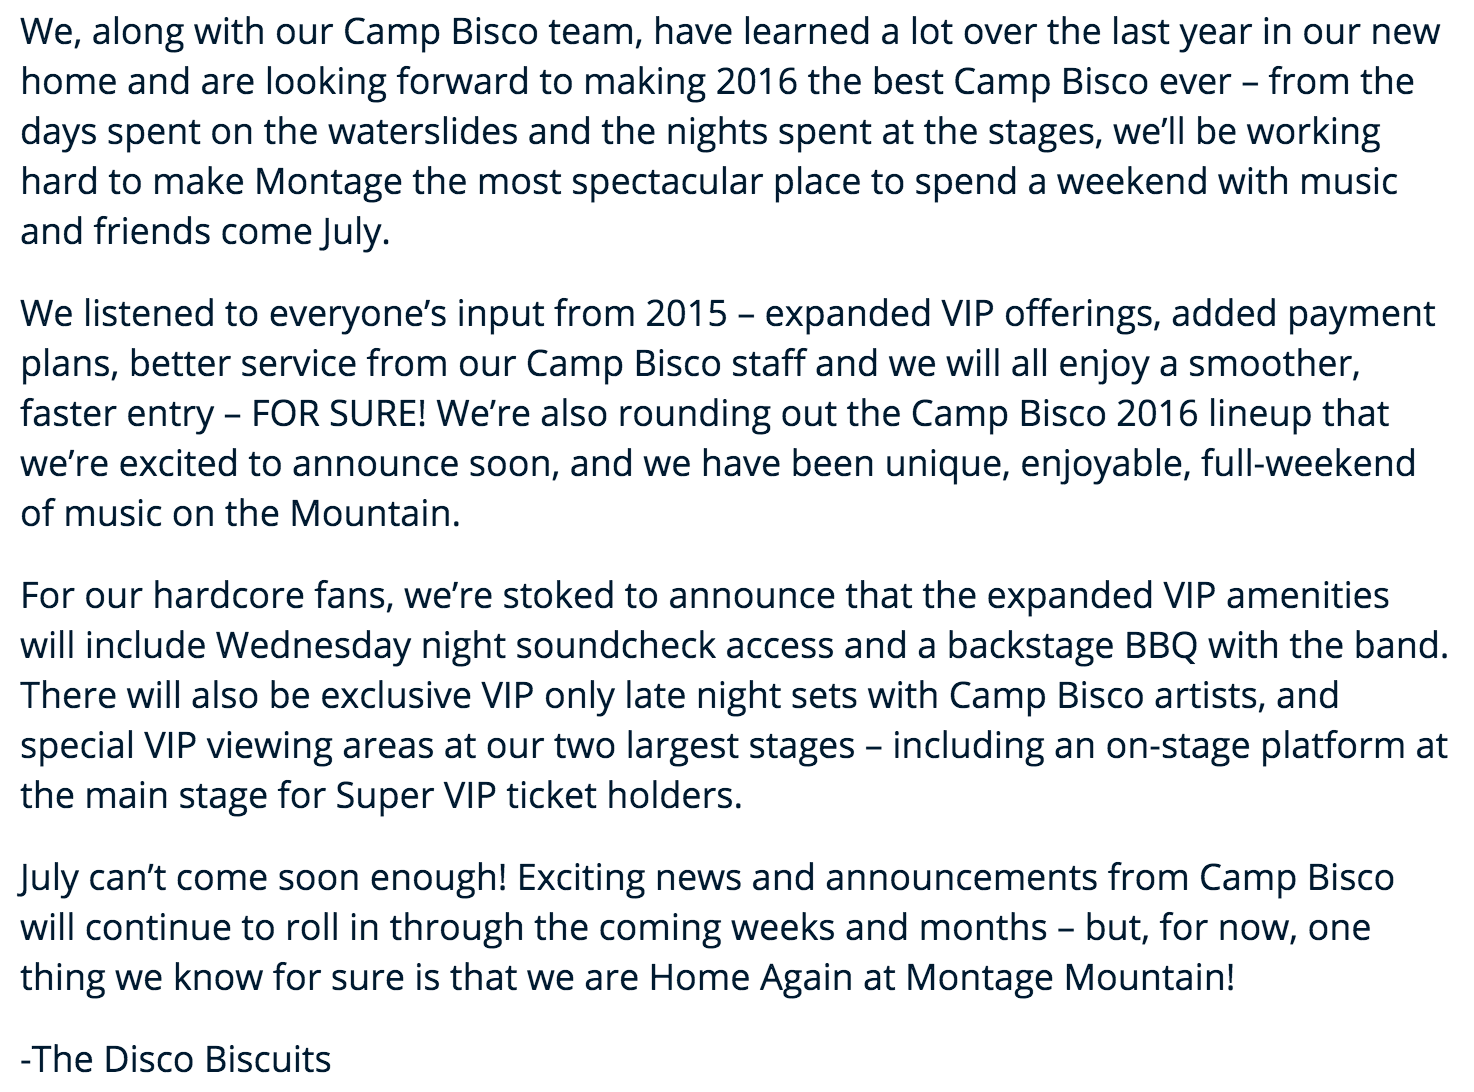 The Disco Biscuits announcement for the 2016 Camp Bisco